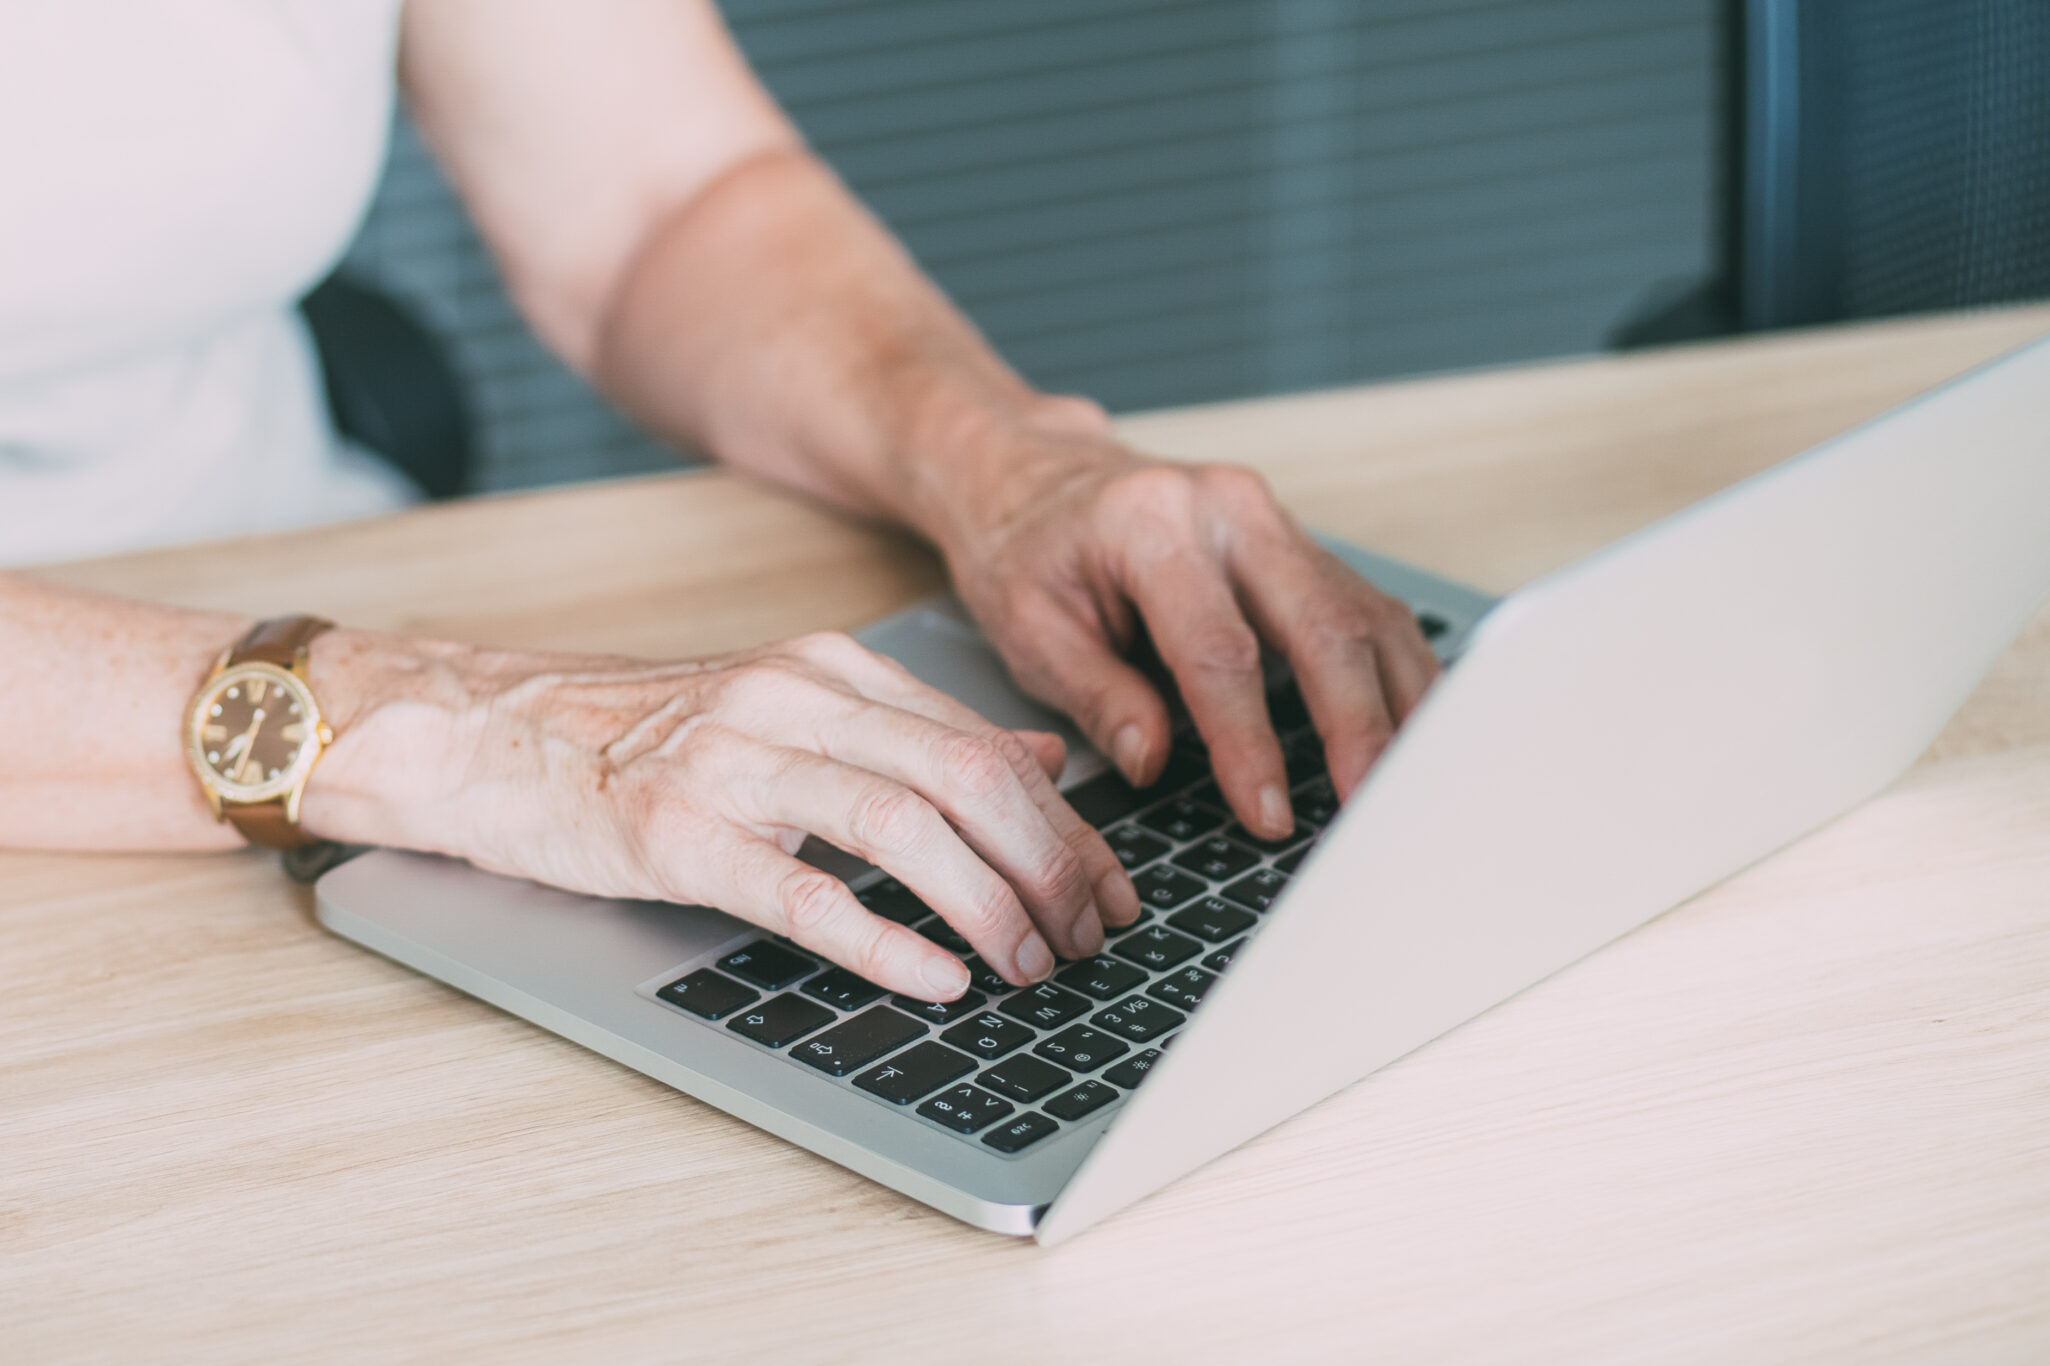 A closeup of a pair of hands typing on a laptop